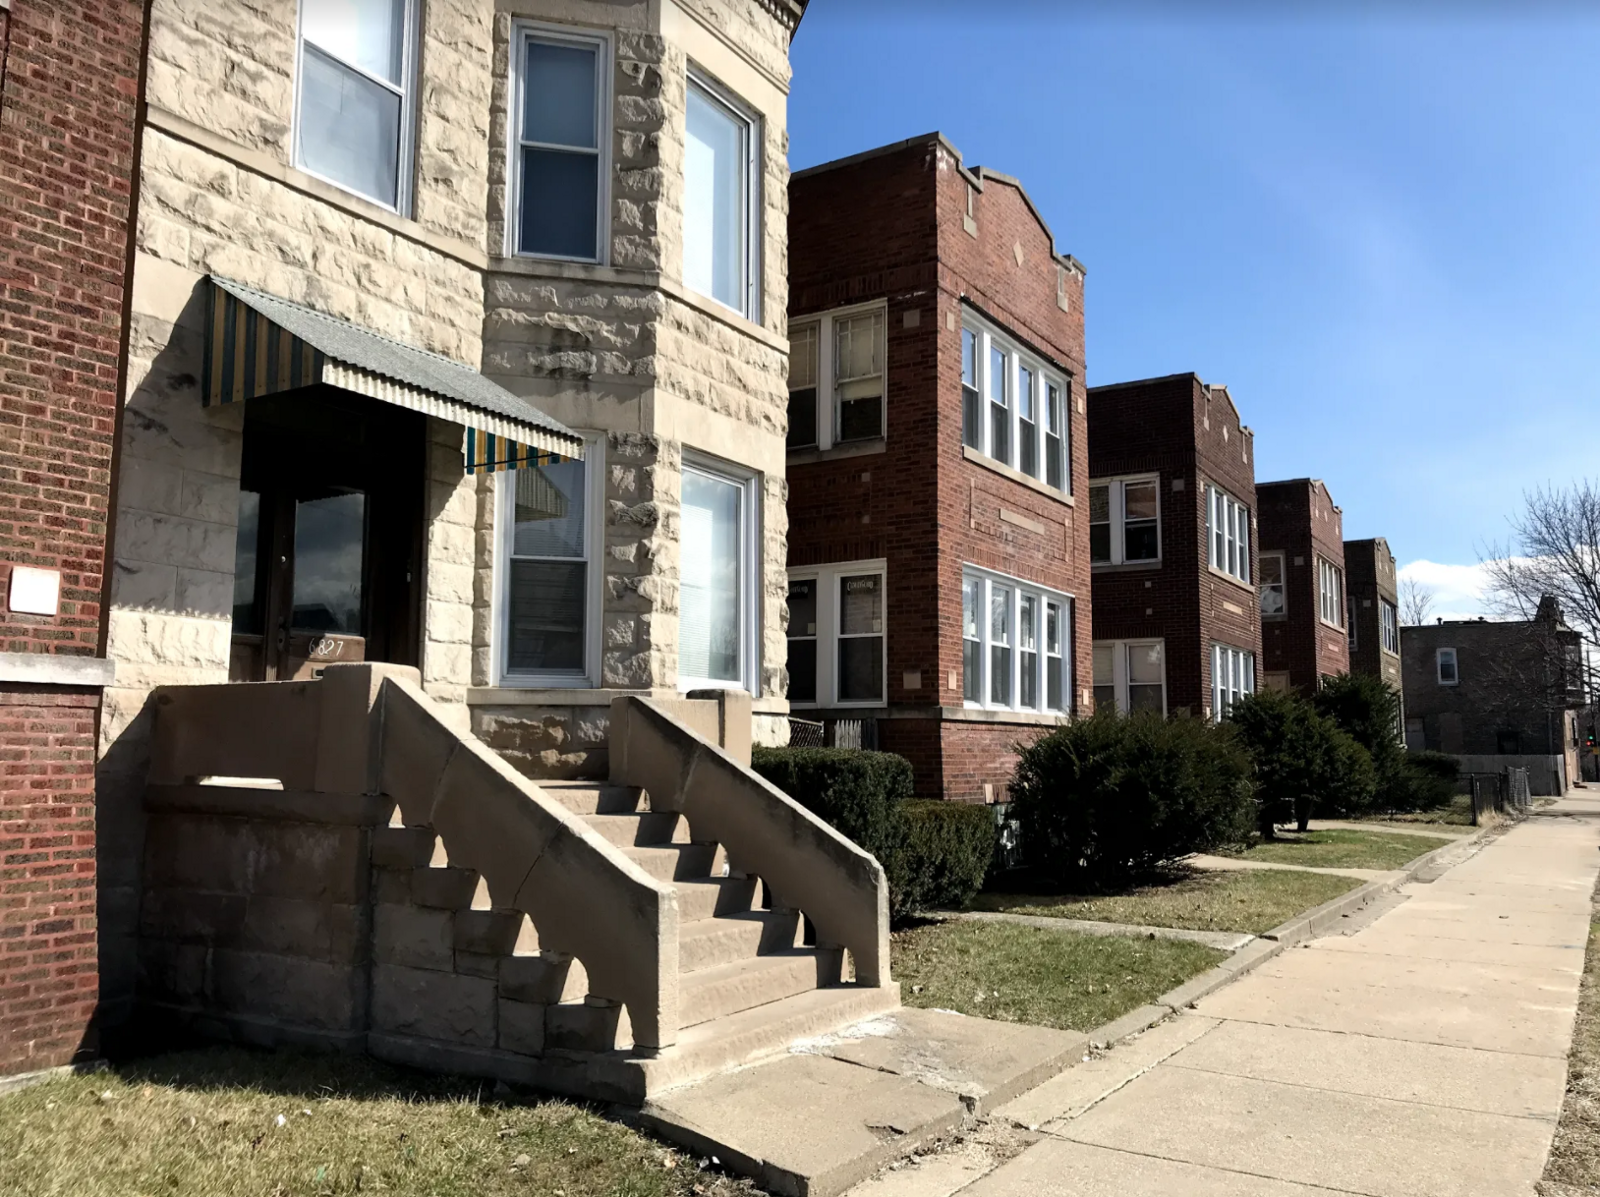 Why were looking into housing affordability and rents in englewood